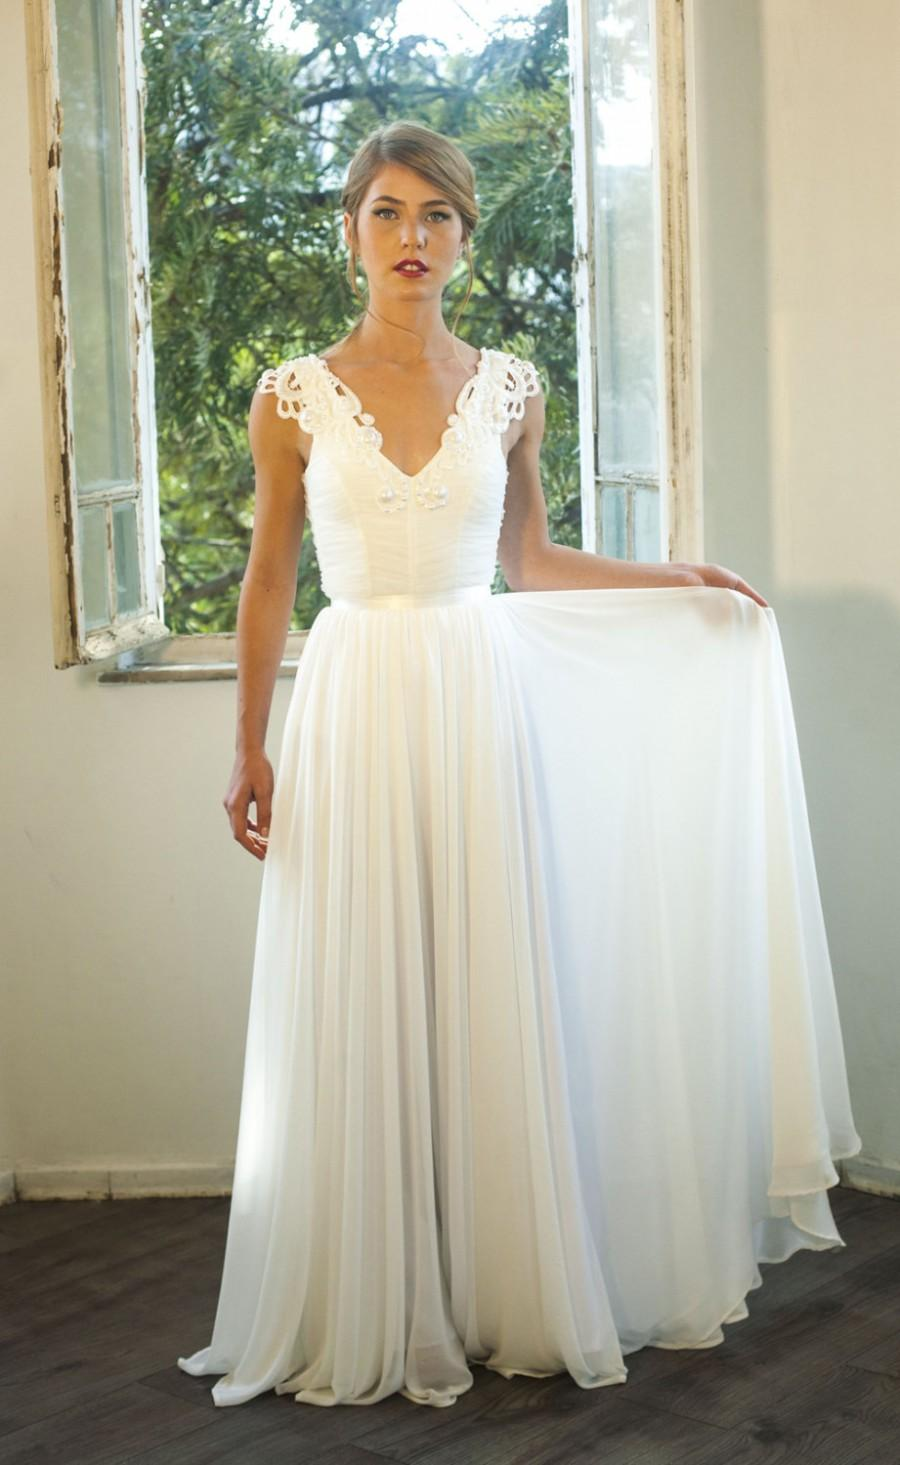 Romantic Vintage Inspired Lace Wedding Dress Custom Made